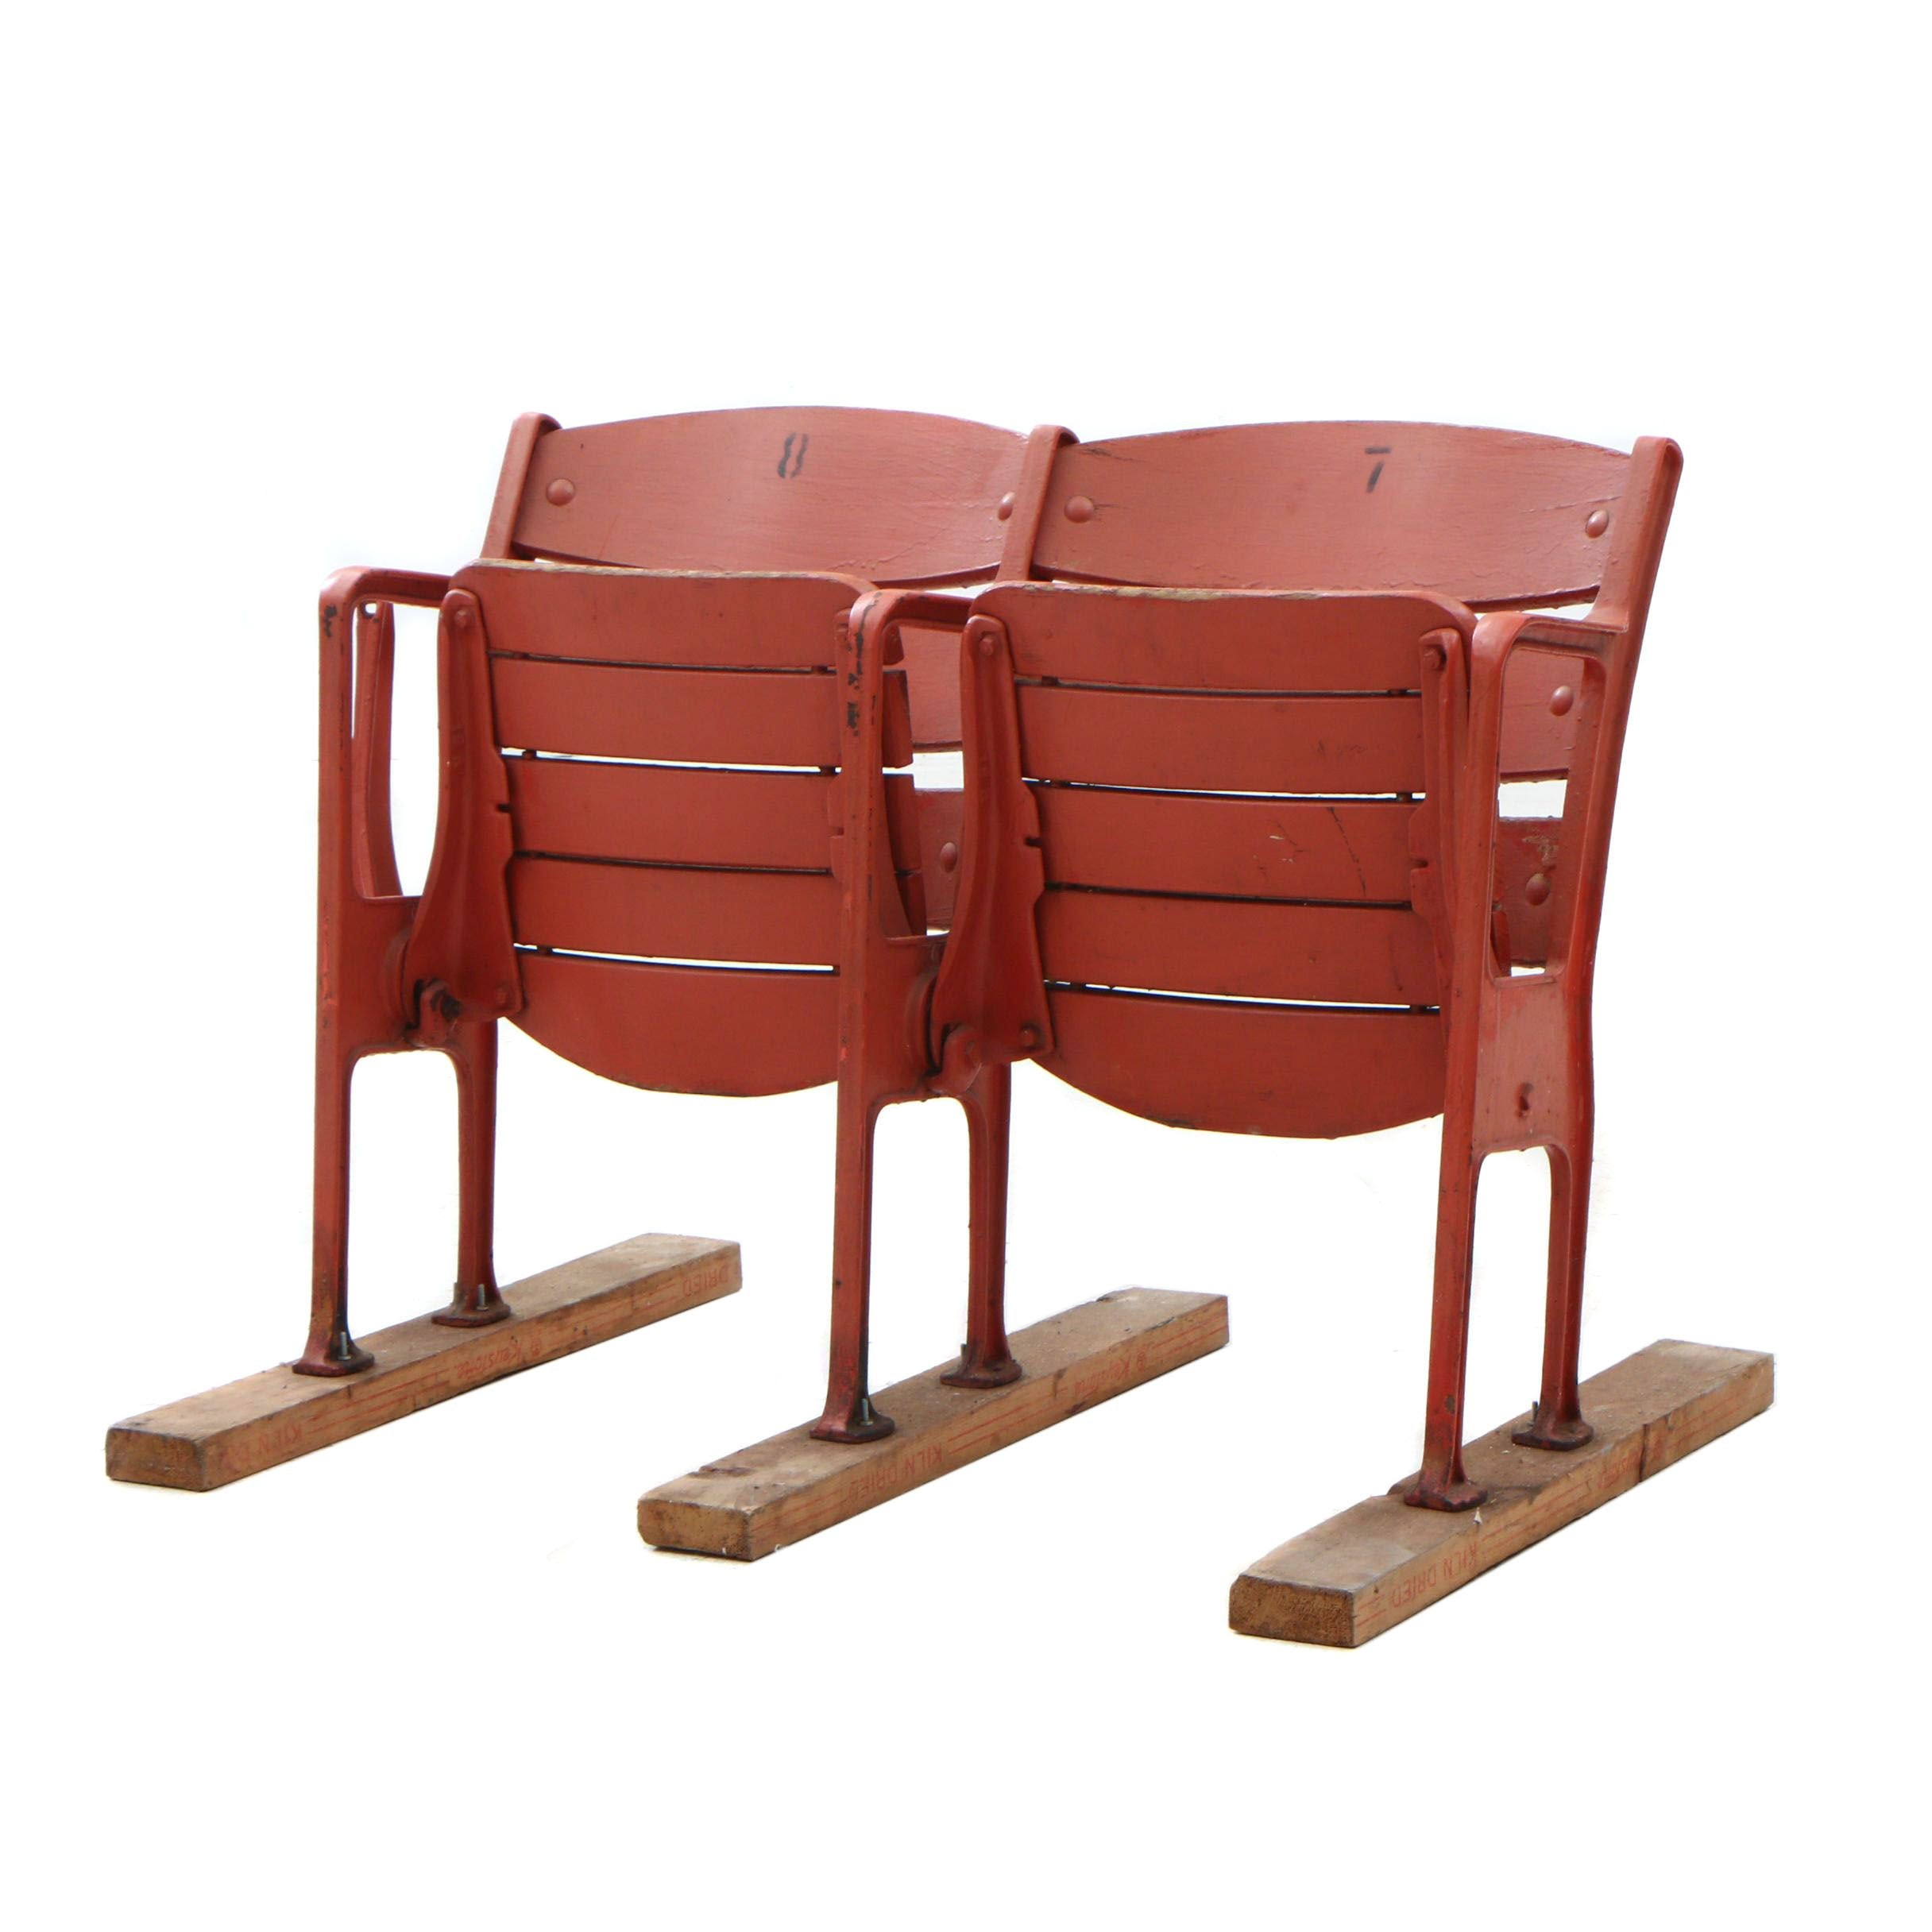 Cincinnati Crosley Field Stadium Self-Standing Seats